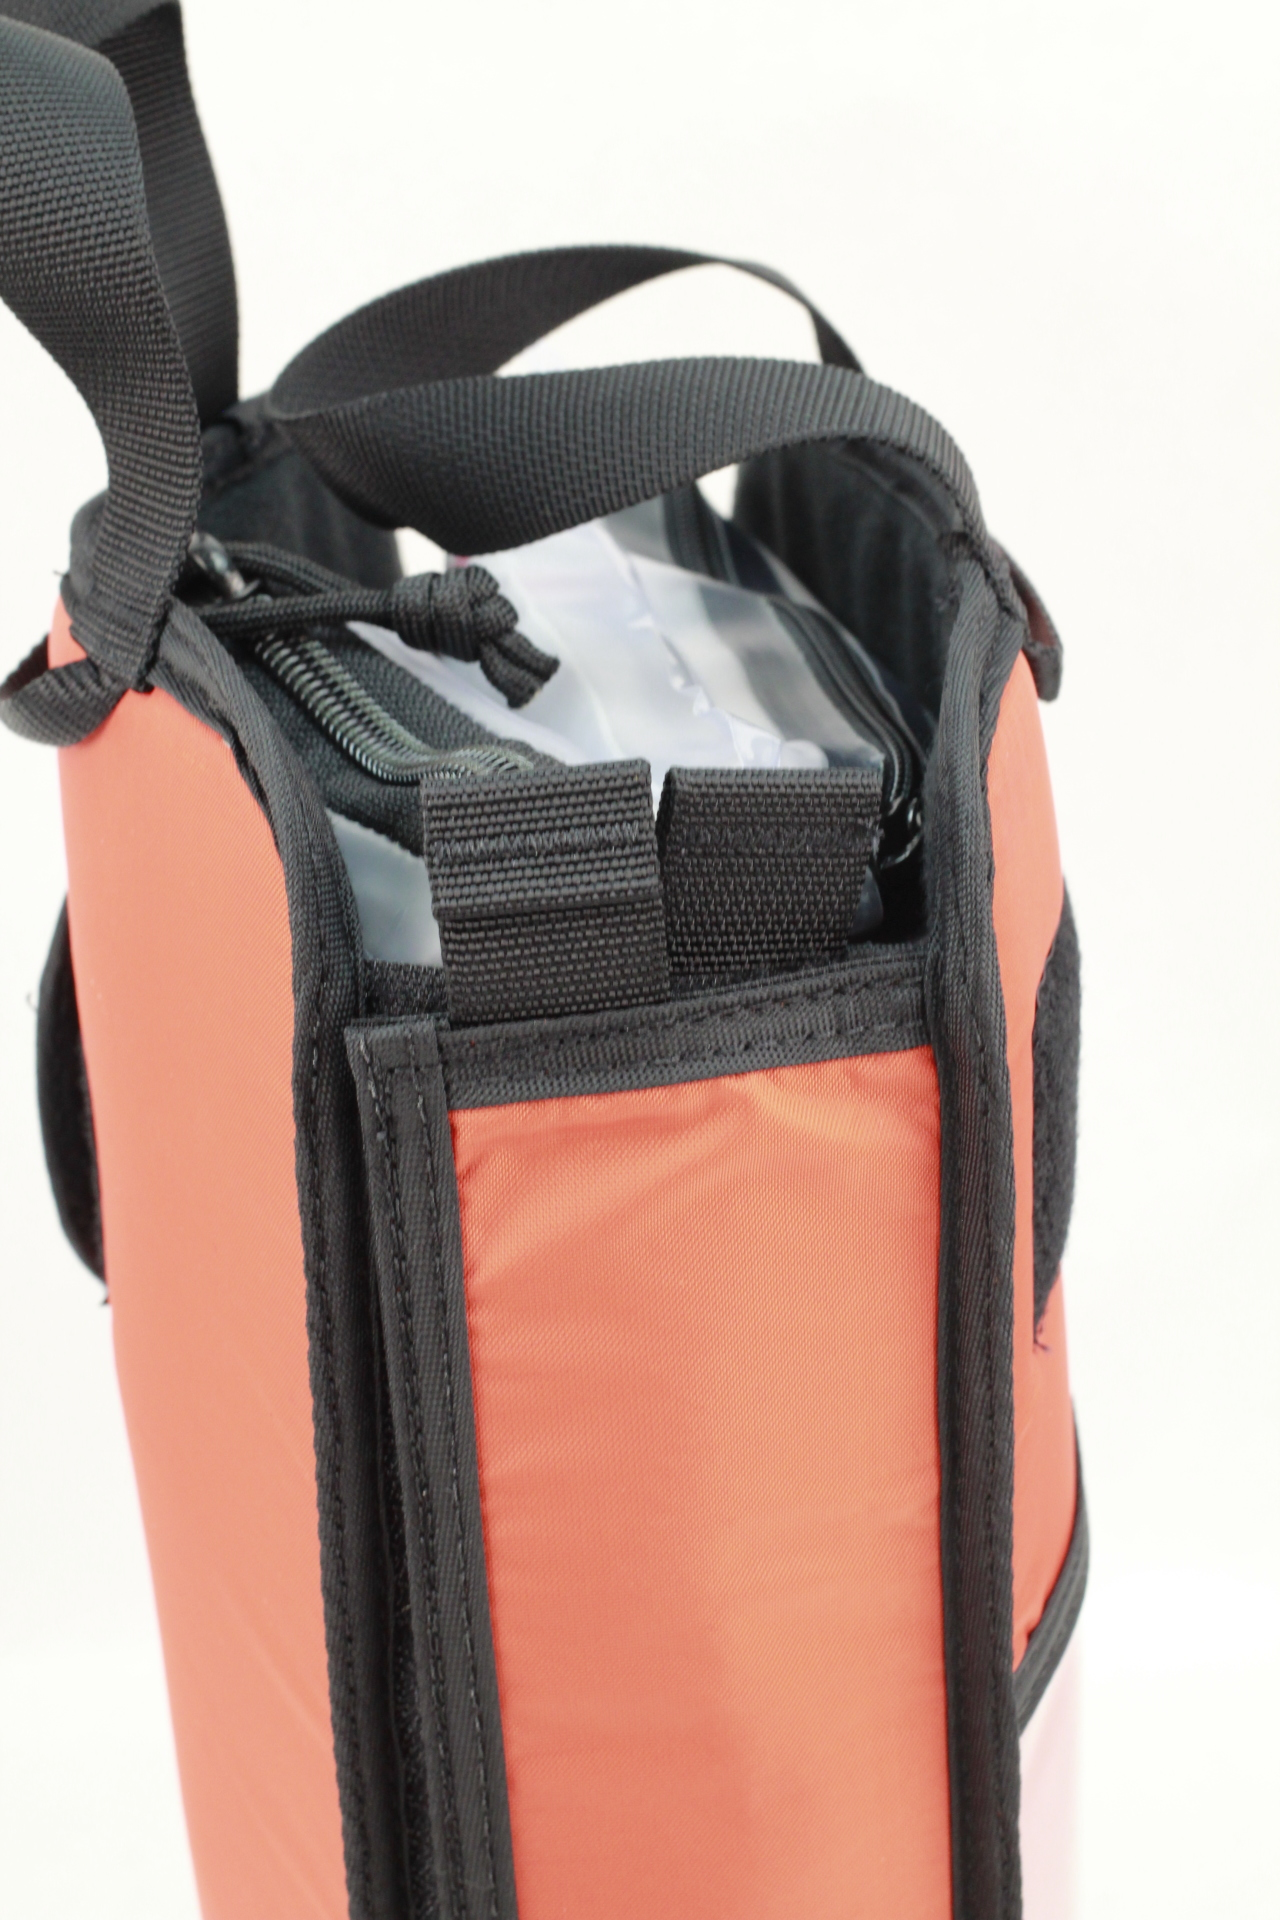 Large Civilian DASH bag binding edge view